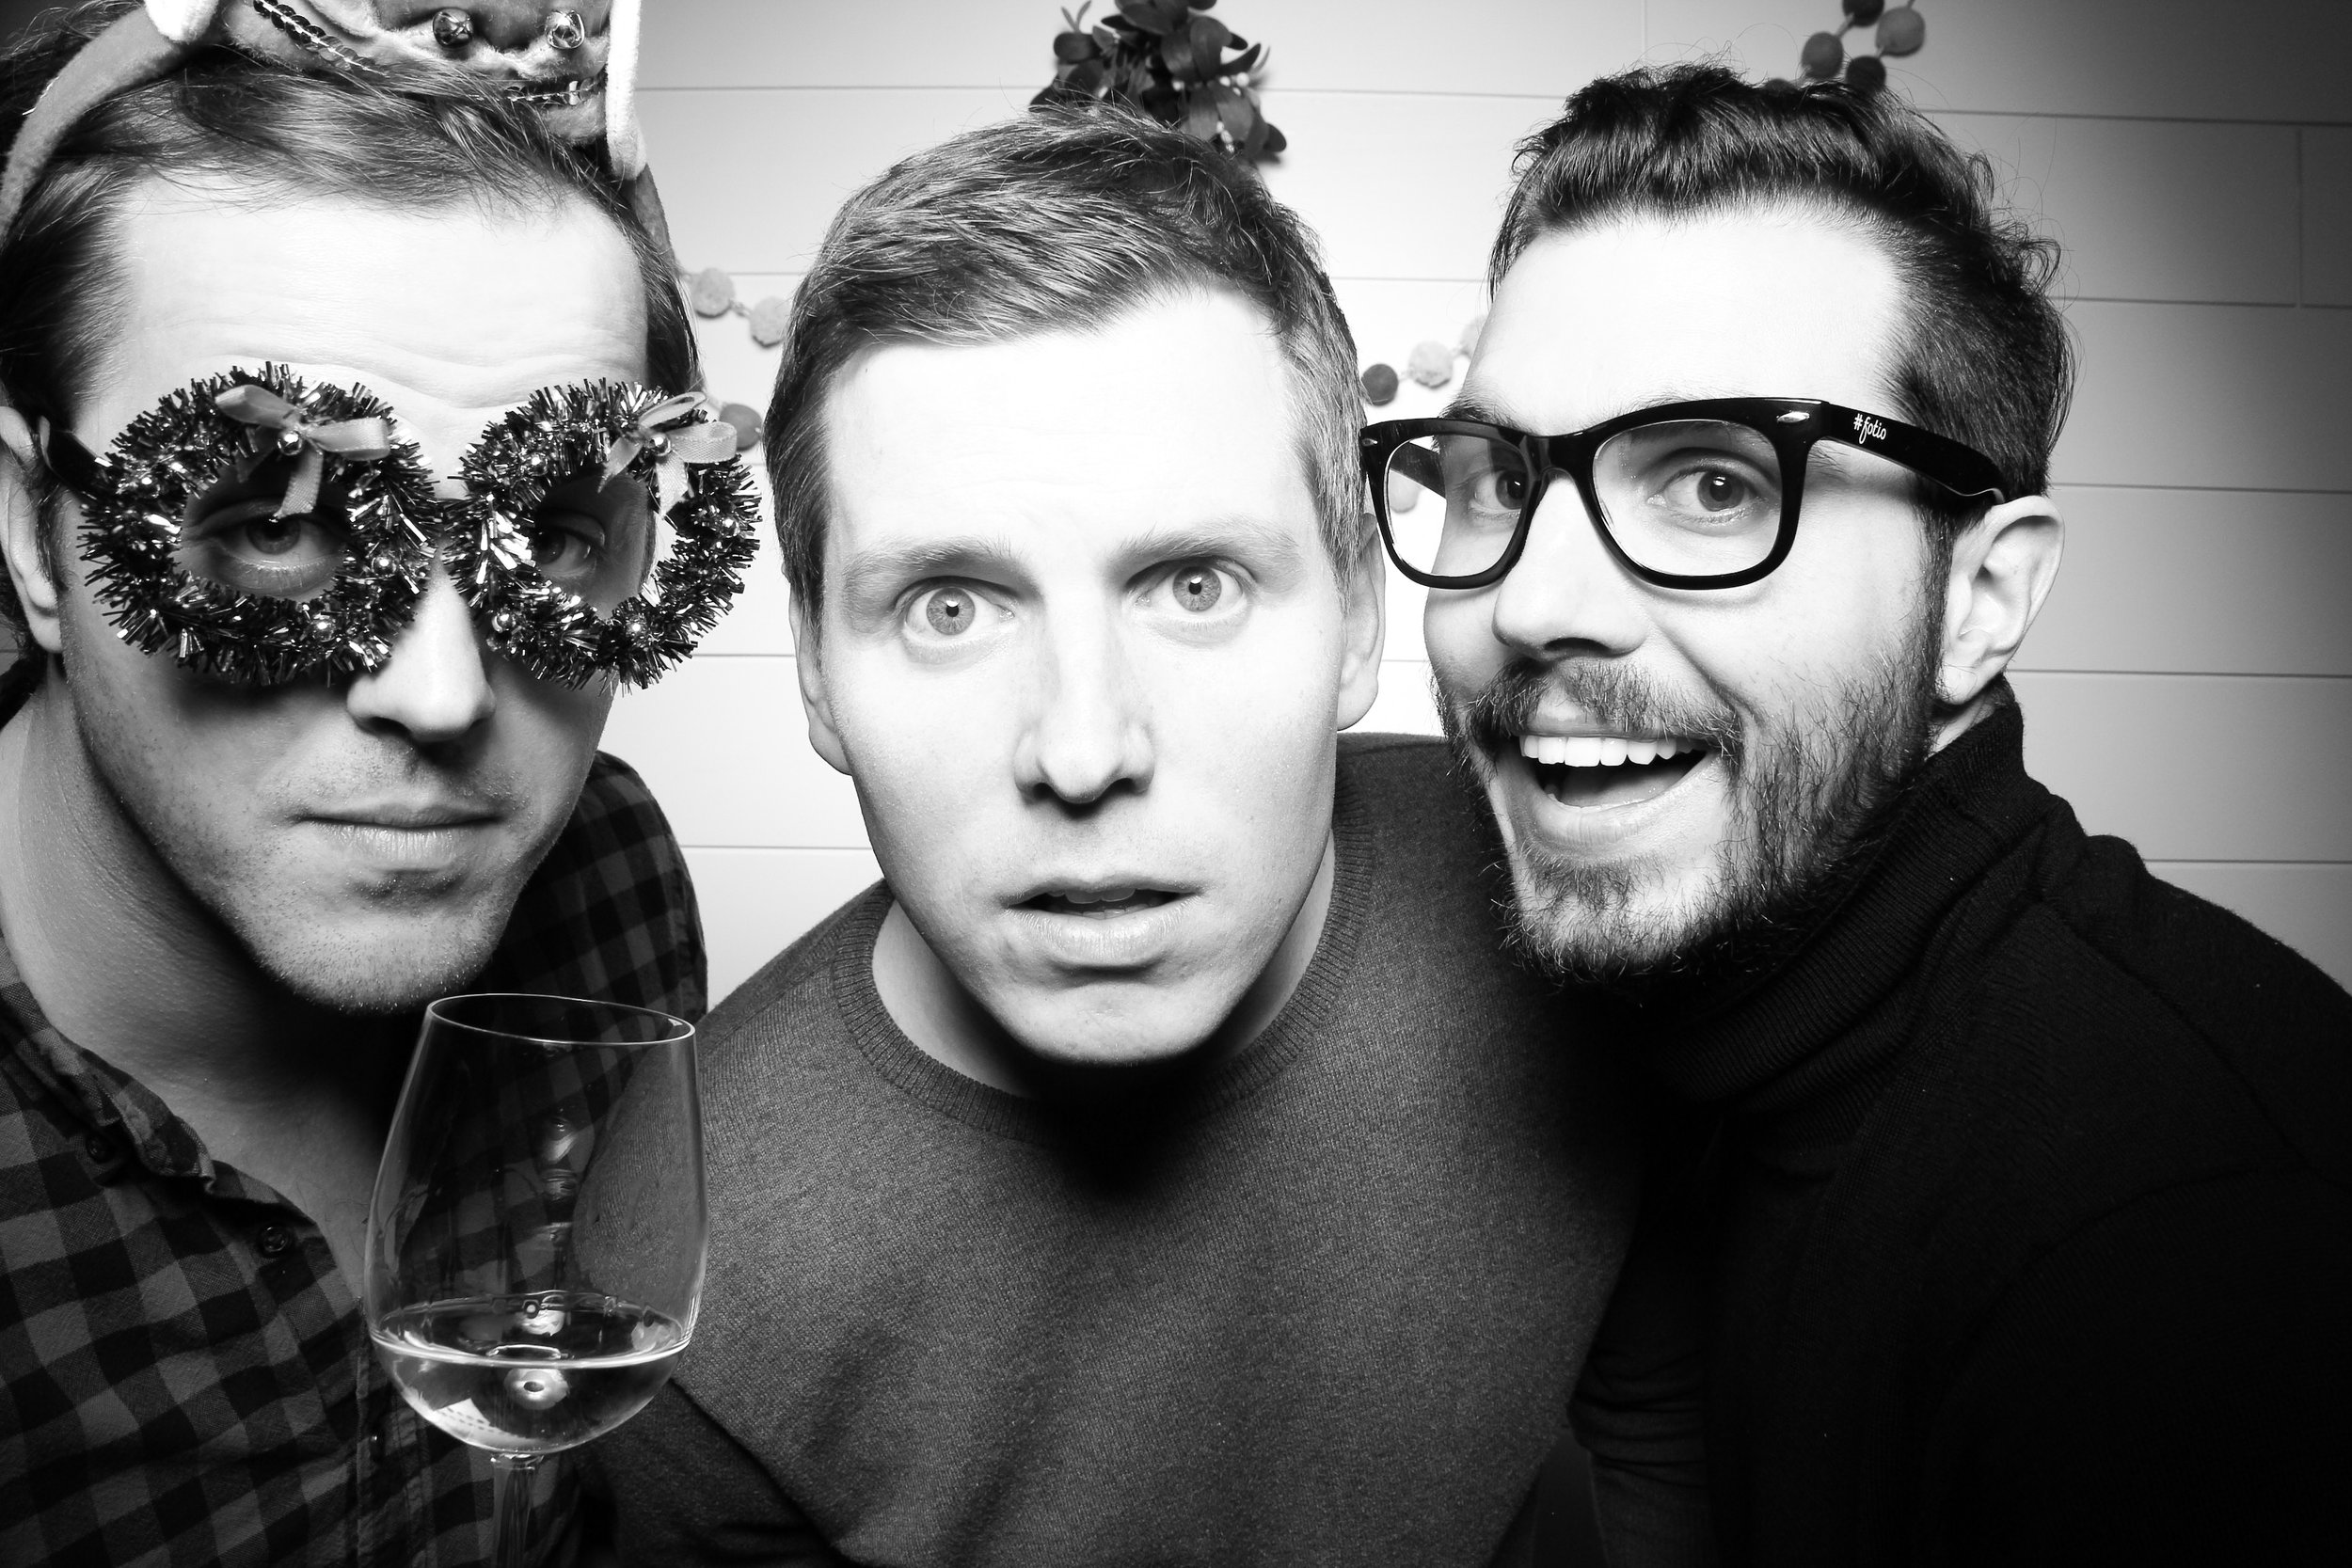 Chicago_Vintage_Photobooth_Christmas_Holiday_Party_14.jpg